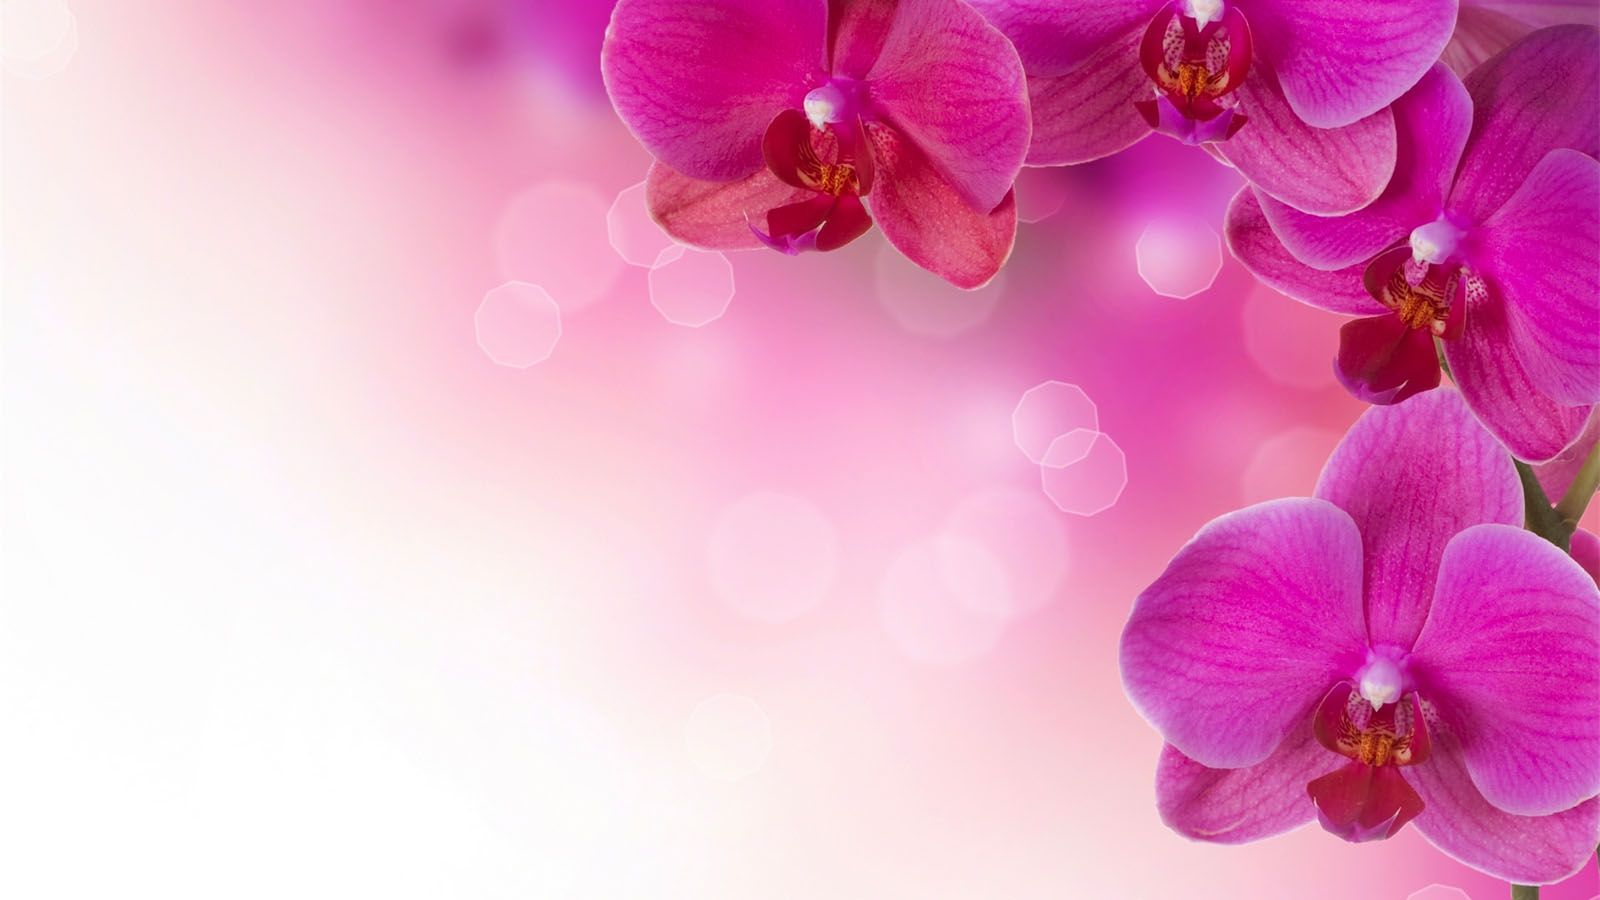 Pink Flower Background wallpaper wallpaper hd background desktop 1600x900